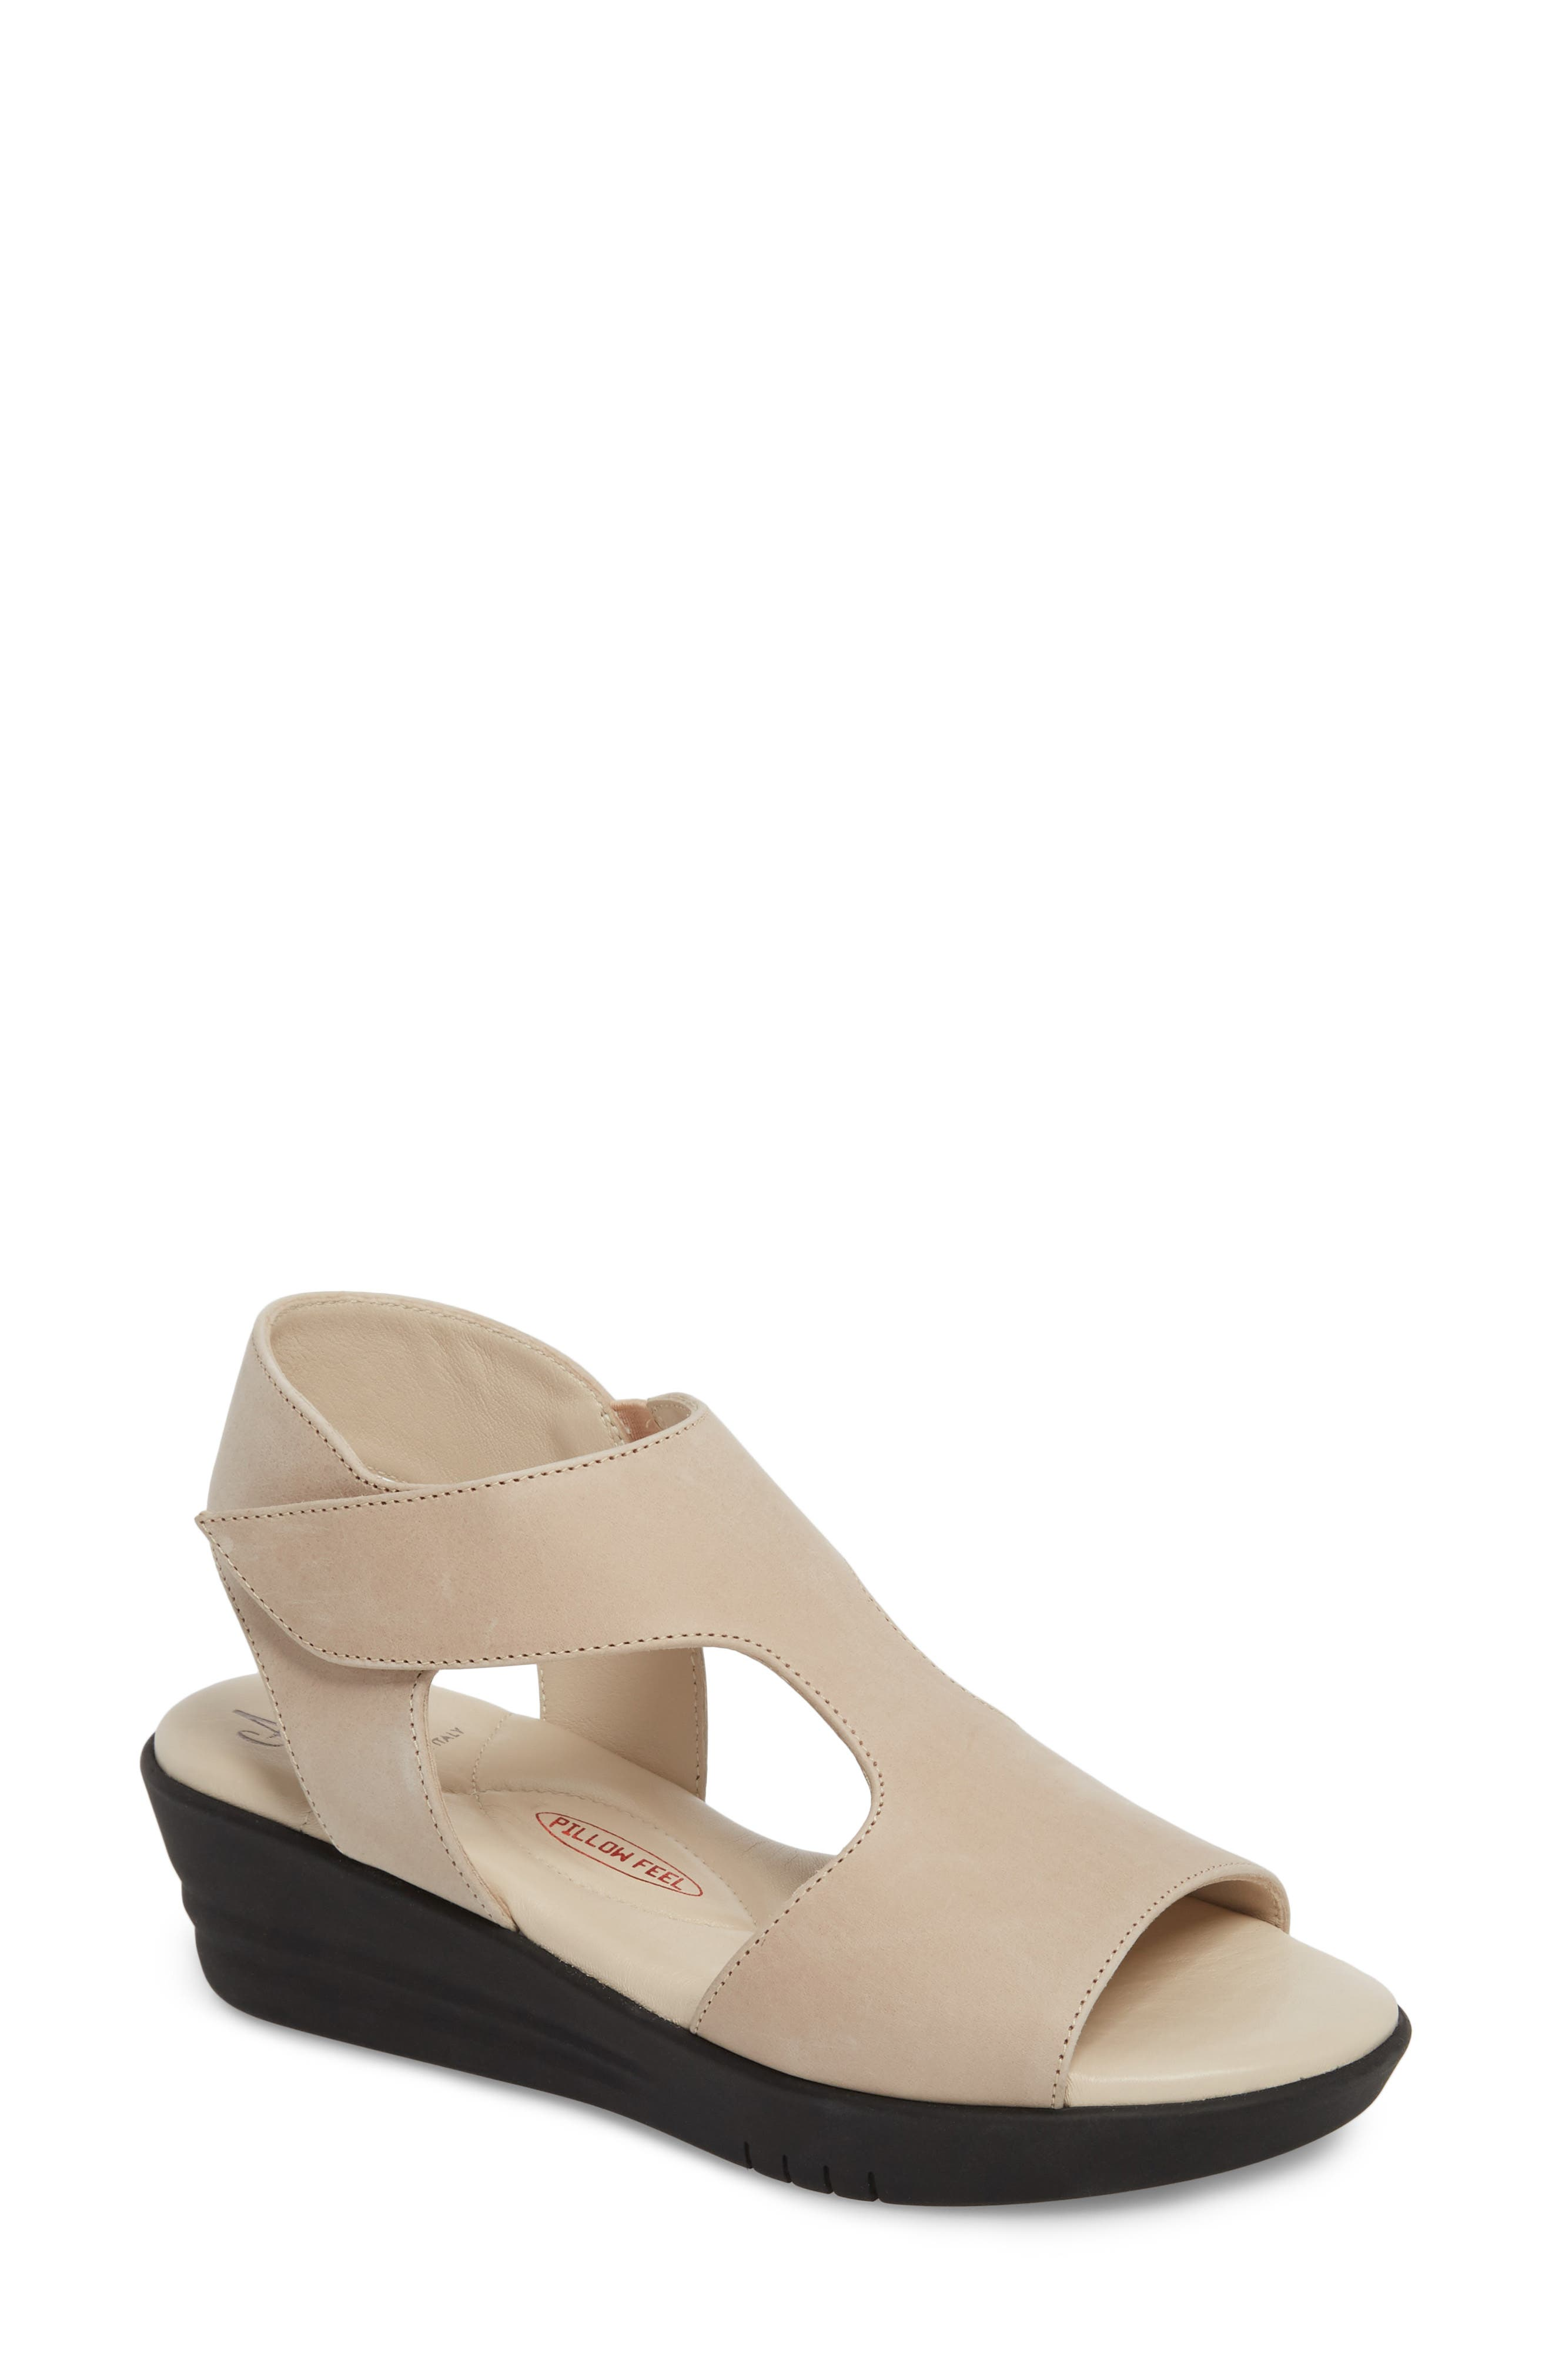 AMALFI BY RANGONI Gabby Platform Sandal in Natural Leather